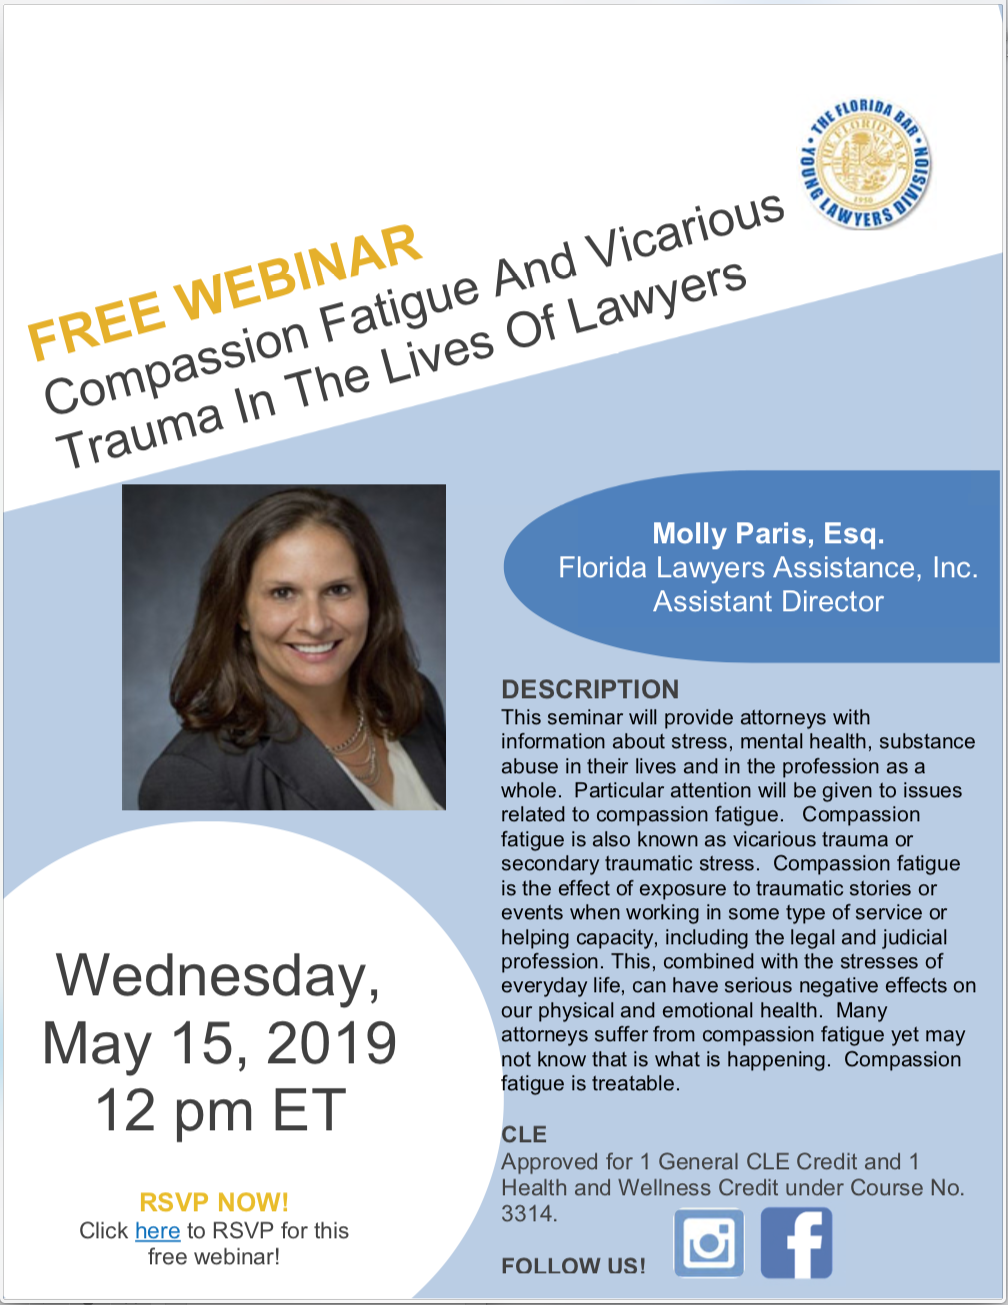 Free Webinar: Compassion Fatigue and Vacarious Trauma in the Lives of Lawyers, Wednesday, May 15, 2019 12 pm ET, Molly Paris, Esq. Florida Lawyers Assistance, Inc. Assistant Director, DESCRIPTION This seminar will provide attorneys with information about stress, mental health, substance abuse in their lives and in the profession as a whole. Particular attention will be given to issues related to compassion fatigue. Compassion fatigue is also known as vicarious trauma or secondary traumatic stress. Compassion fatigue is the effect of exposure to traumatic stories or events when working in some type of service or helping capacity, including the legal and judicial profession. This, combined with the stresses of everyday life, can have serious negative effects on our physical and emotional health. Many attorneys suffer from compassion fatigue yet may not know that is what is happening. Compassion fatigue is treatable. CLE Approved for 1 General CLE Credit.